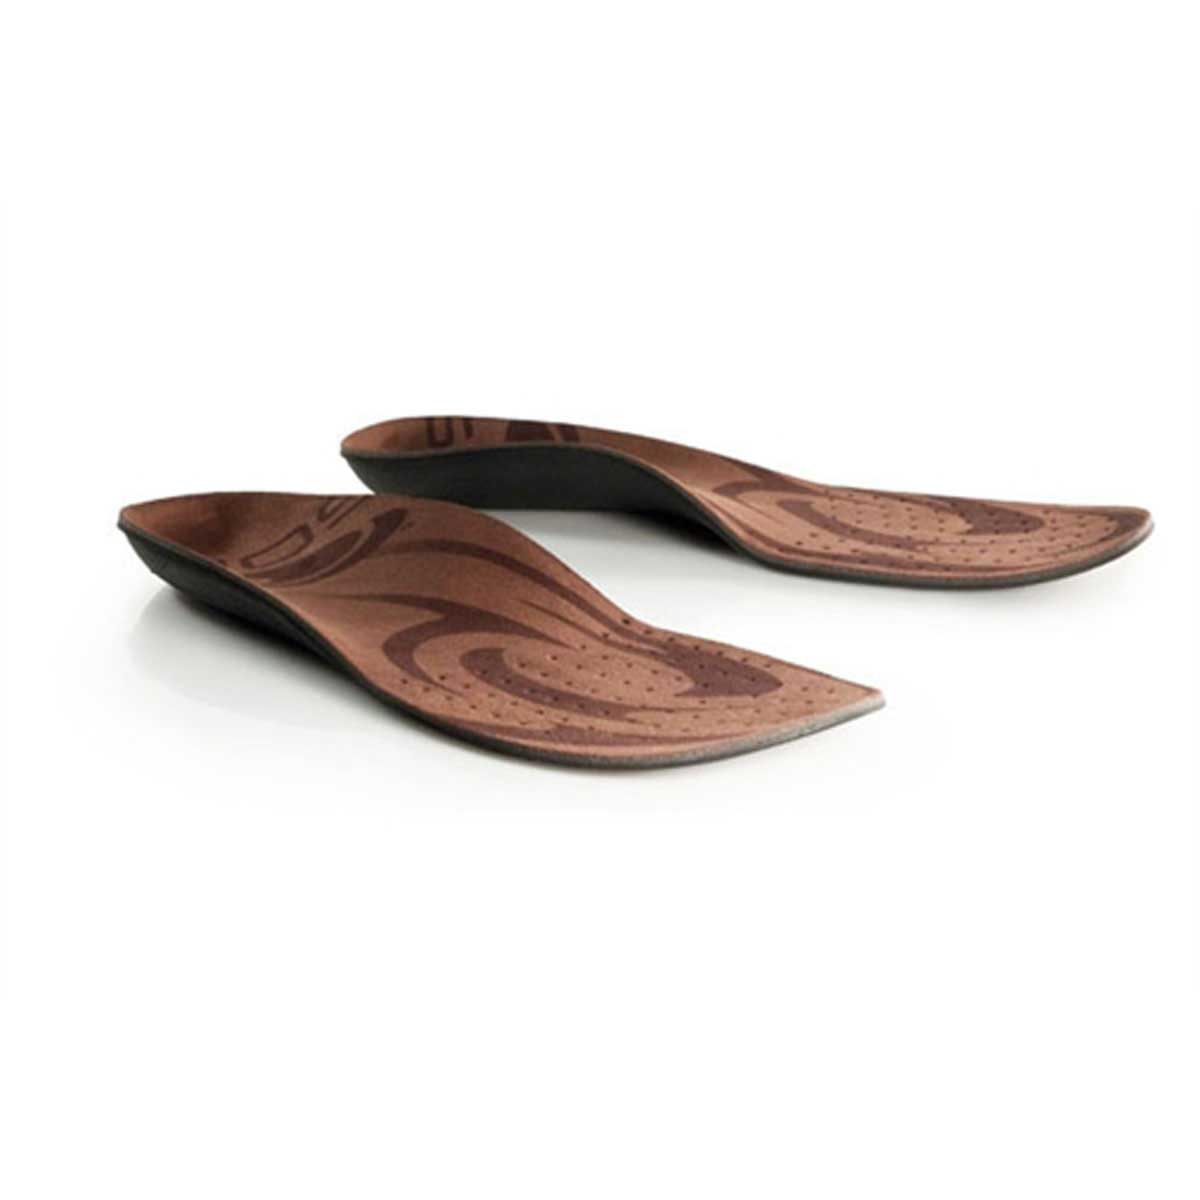 http://www.protherapysupplies.com/Softec-Casual-Footbed-1.jpg